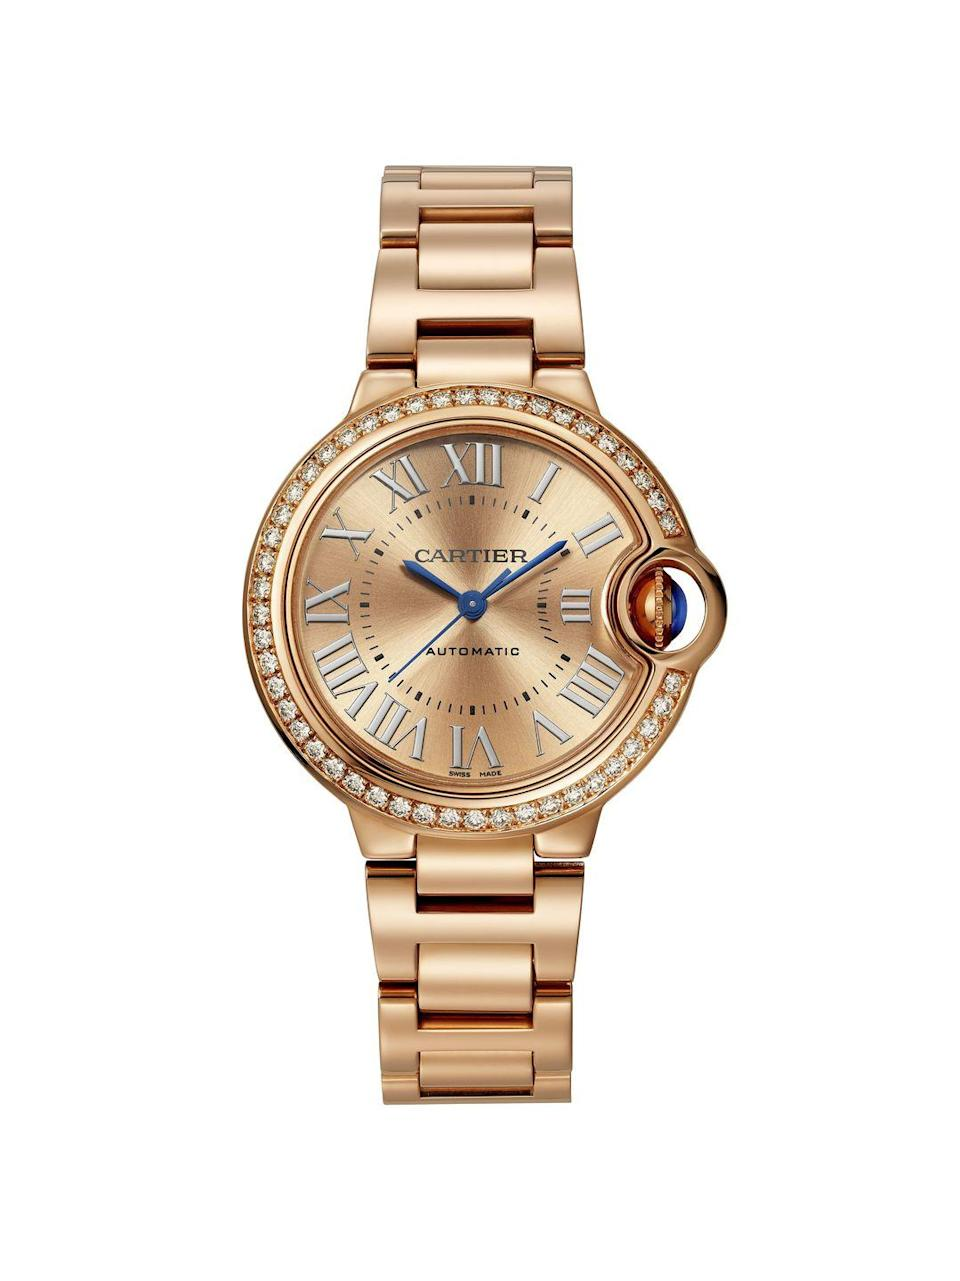 "<p><a class=""link rapid-noclick-resp"" href=""https://www.cartier.com/Item/Index?cod10=11452292647333476&siteCode=CARTIER_GB&langId=4"" rel=""nofollow noopener"" target=""_blank"" data-ylk=""slk:SHOP NOW"">SHOP NOW</a></p><p>First launched in 2006, Cartier's Ballon Bleu is an unusual but nonetheless elegant member of its stable of iconic timepieces, as loved and worn by the Duchess of Cambridge. Its name is derived from the polished blue sapphire cabochon that is mounted in the crown, as well as its spherical 'balloon' shaped case.The very latest iteration is a self-winding model with a 33mm dial, a case set with 47 brilliant-cut diamonds (all the better to highlight that sapphire cabochon) and a 18k pink gold bracelet that can be swapped out for a colourful leather strap.</p><p>Ballon Bleau watch, £35,000, <a href=""https://www.cartier.com/Item/Index?cod10=11452292647333476&siteCode=CARTIER_GB&langId=4"" rel=""nofollow noopener"" target=""_blank"" data-ylk=""slk:Cartier"" class=""link rapid-noclick-resp"">Cartier</a></p>"